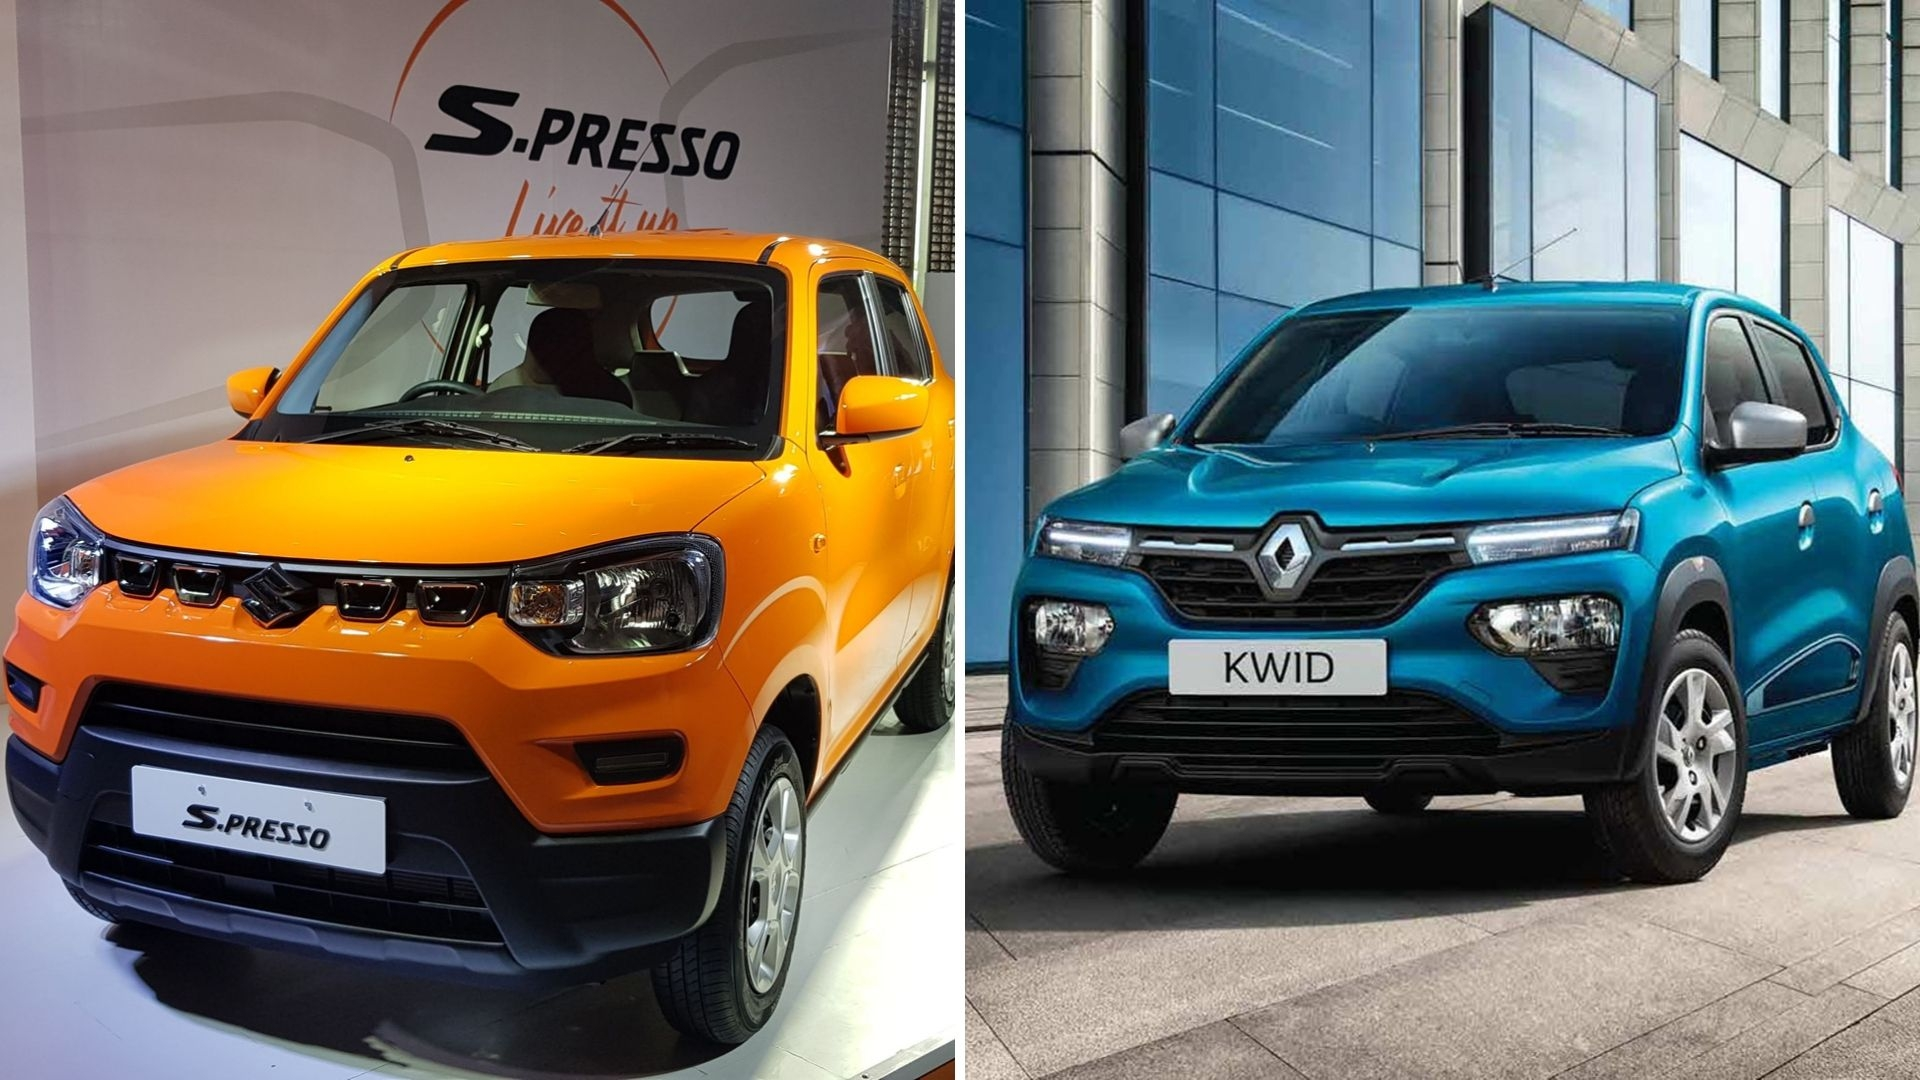 Maruti Suzuki S-Presso vs Renault Kwid: The Small Car Challenge